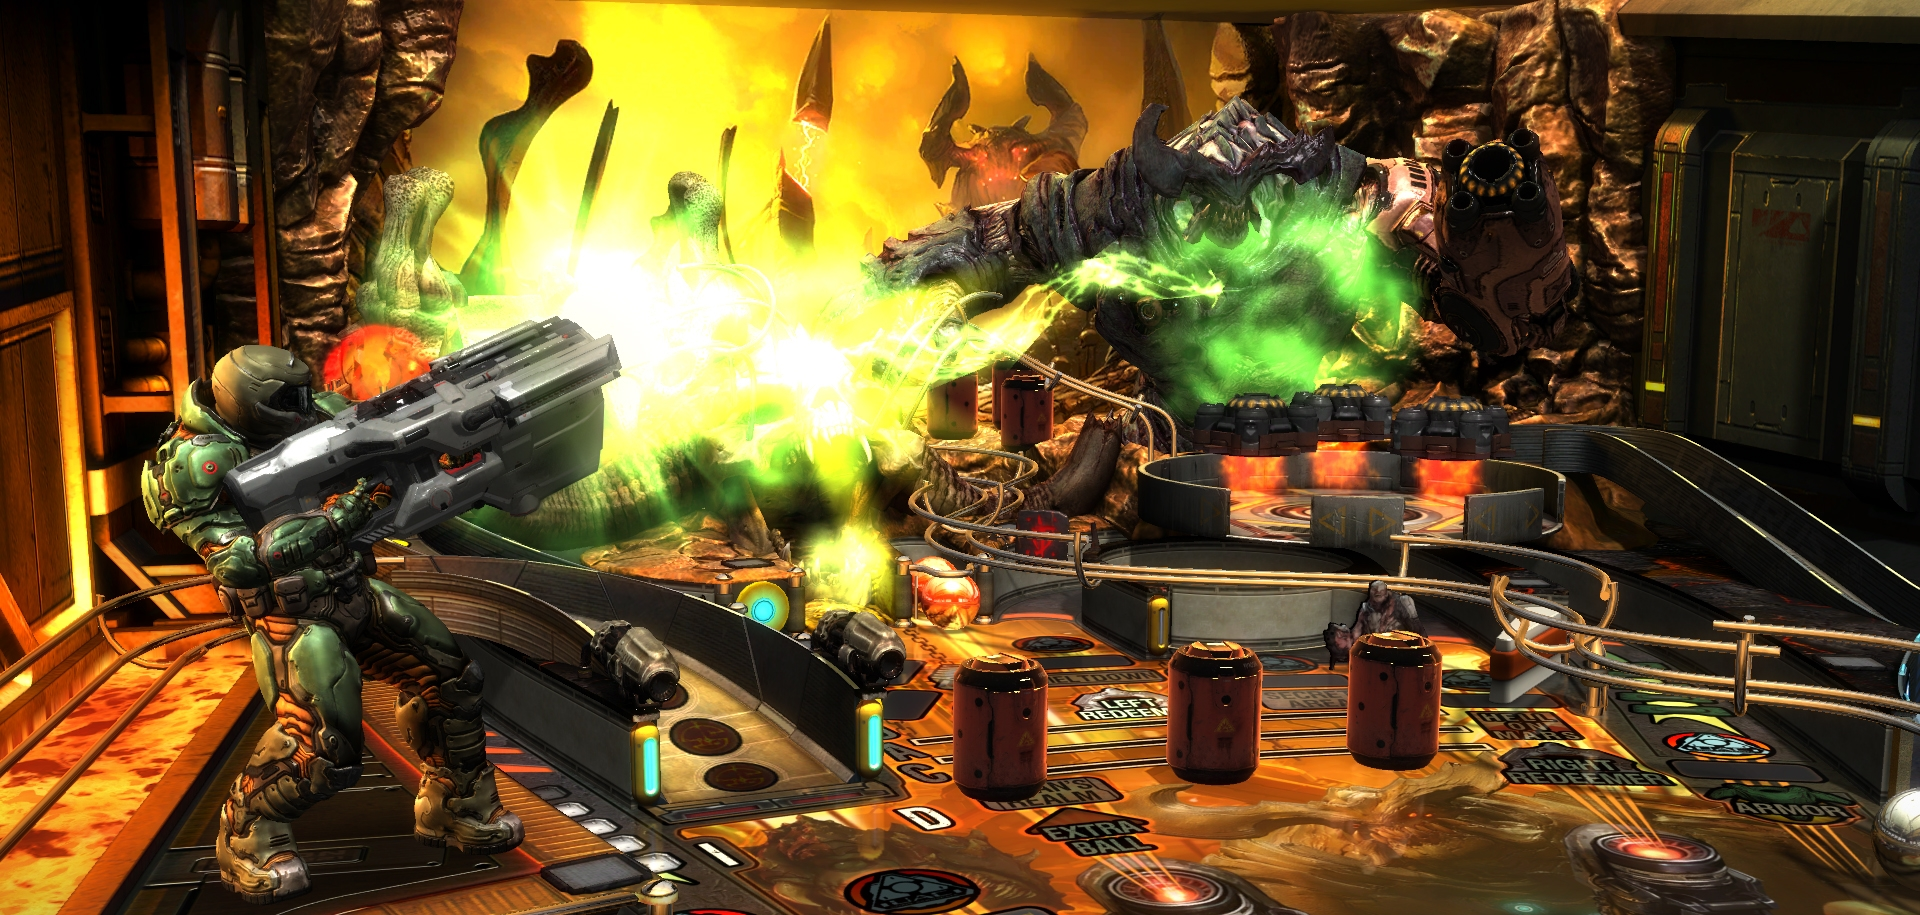 bethesda-pinball-screenshot-4